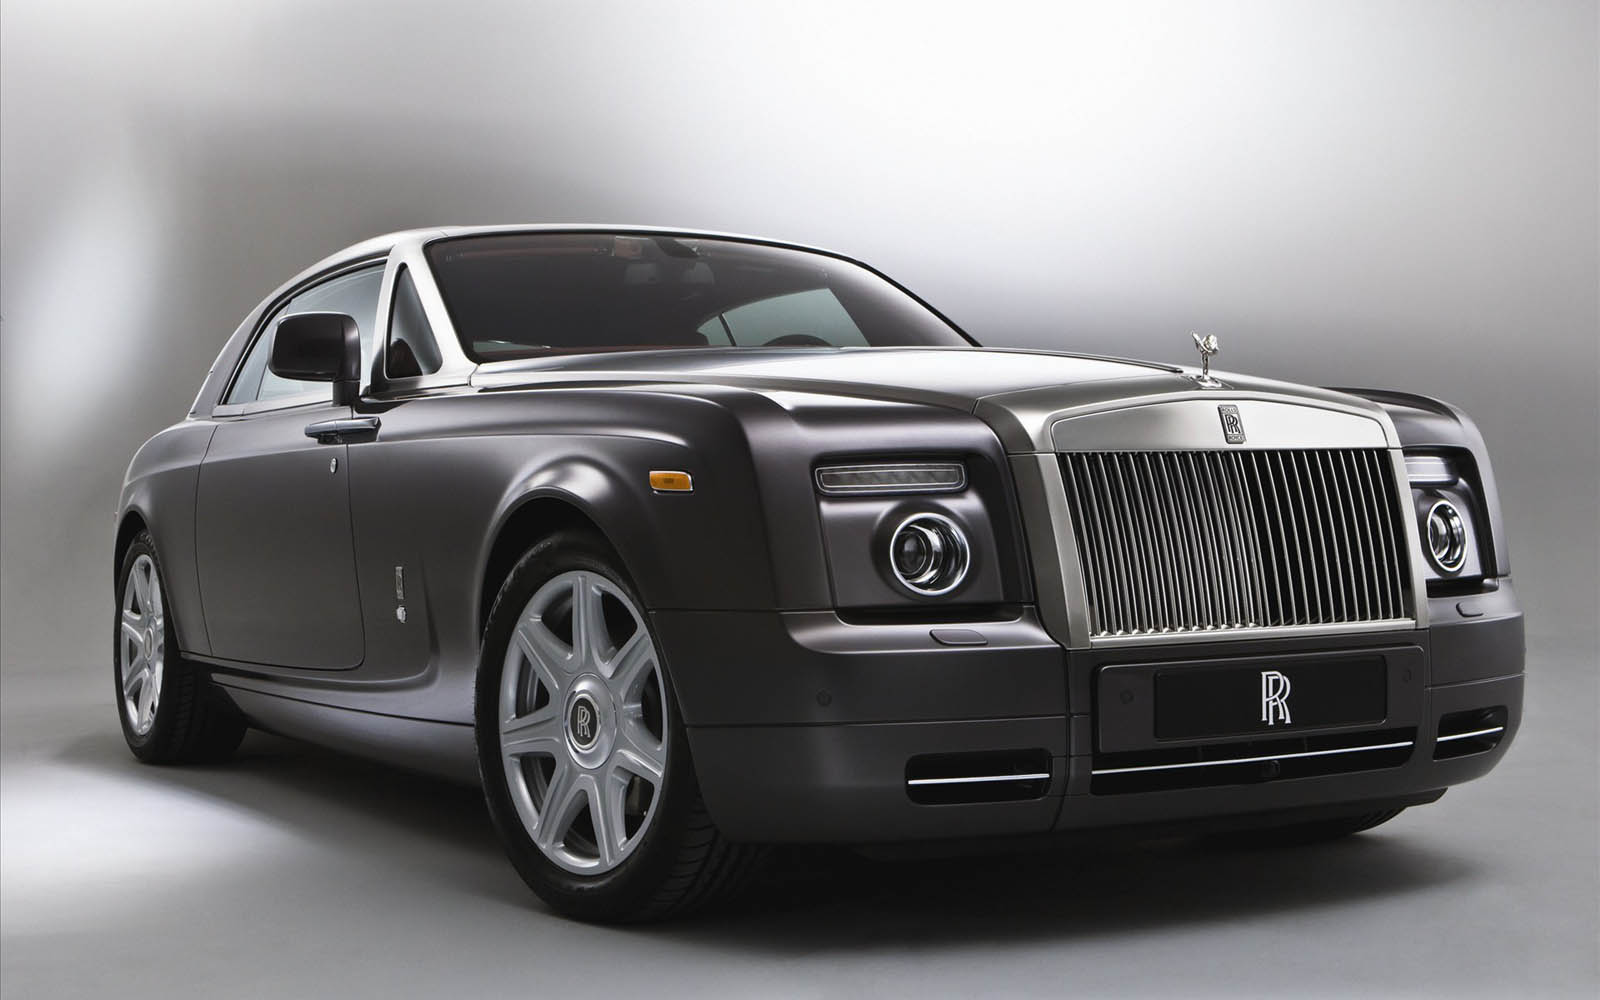 Rolls royce phanthom photo - 4